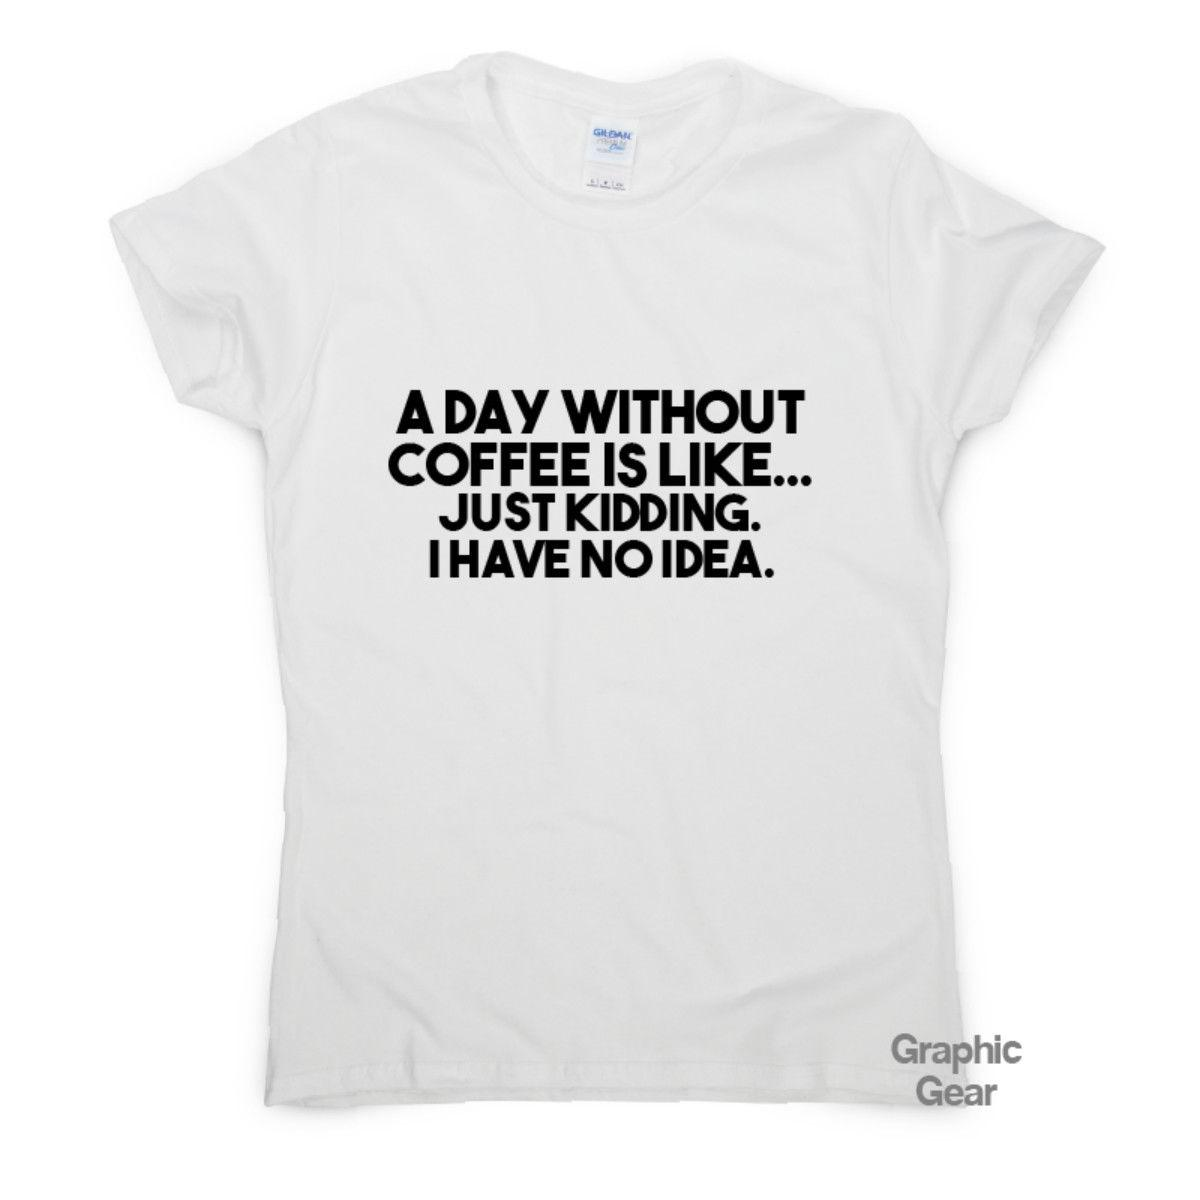 4c427629 A Day Without Coffee Funny T Shirts Awesome Gift Her Womens Sarcastic  Slogan TopFunny Unisex Casual Tshirt Top Discounted T Shirts Tee Shirt Of  The Day From ...